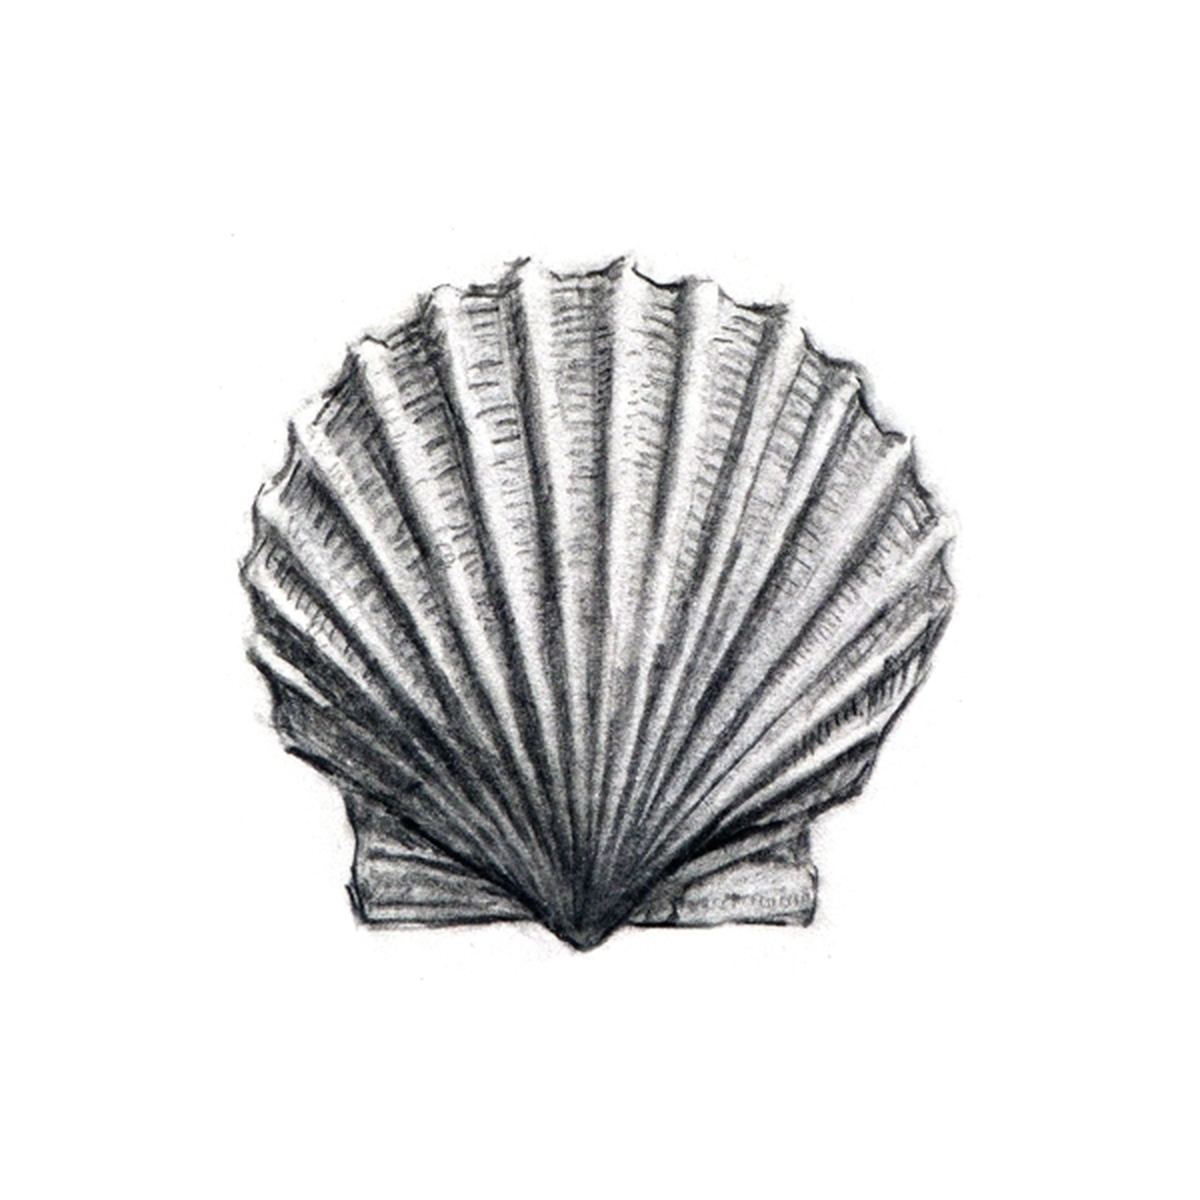 Scallop Shell (large view)